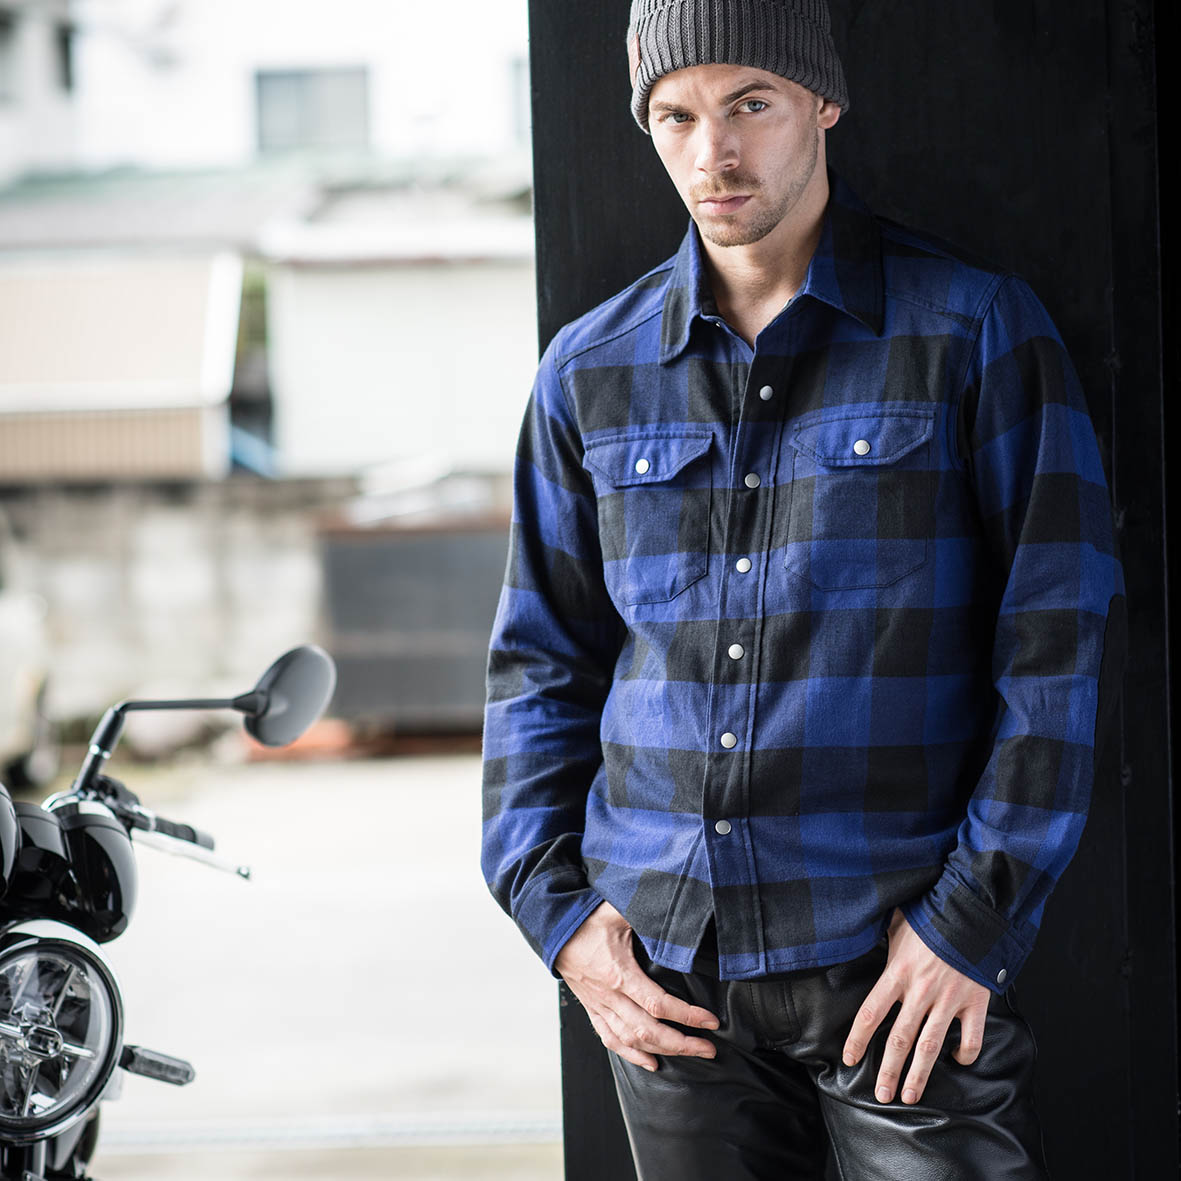 http://ekadoya.com/html/user_data/image/RIDE-WORK-SHIRT-WINTER/RIDE WORK SHIRT WINTER01.jpg